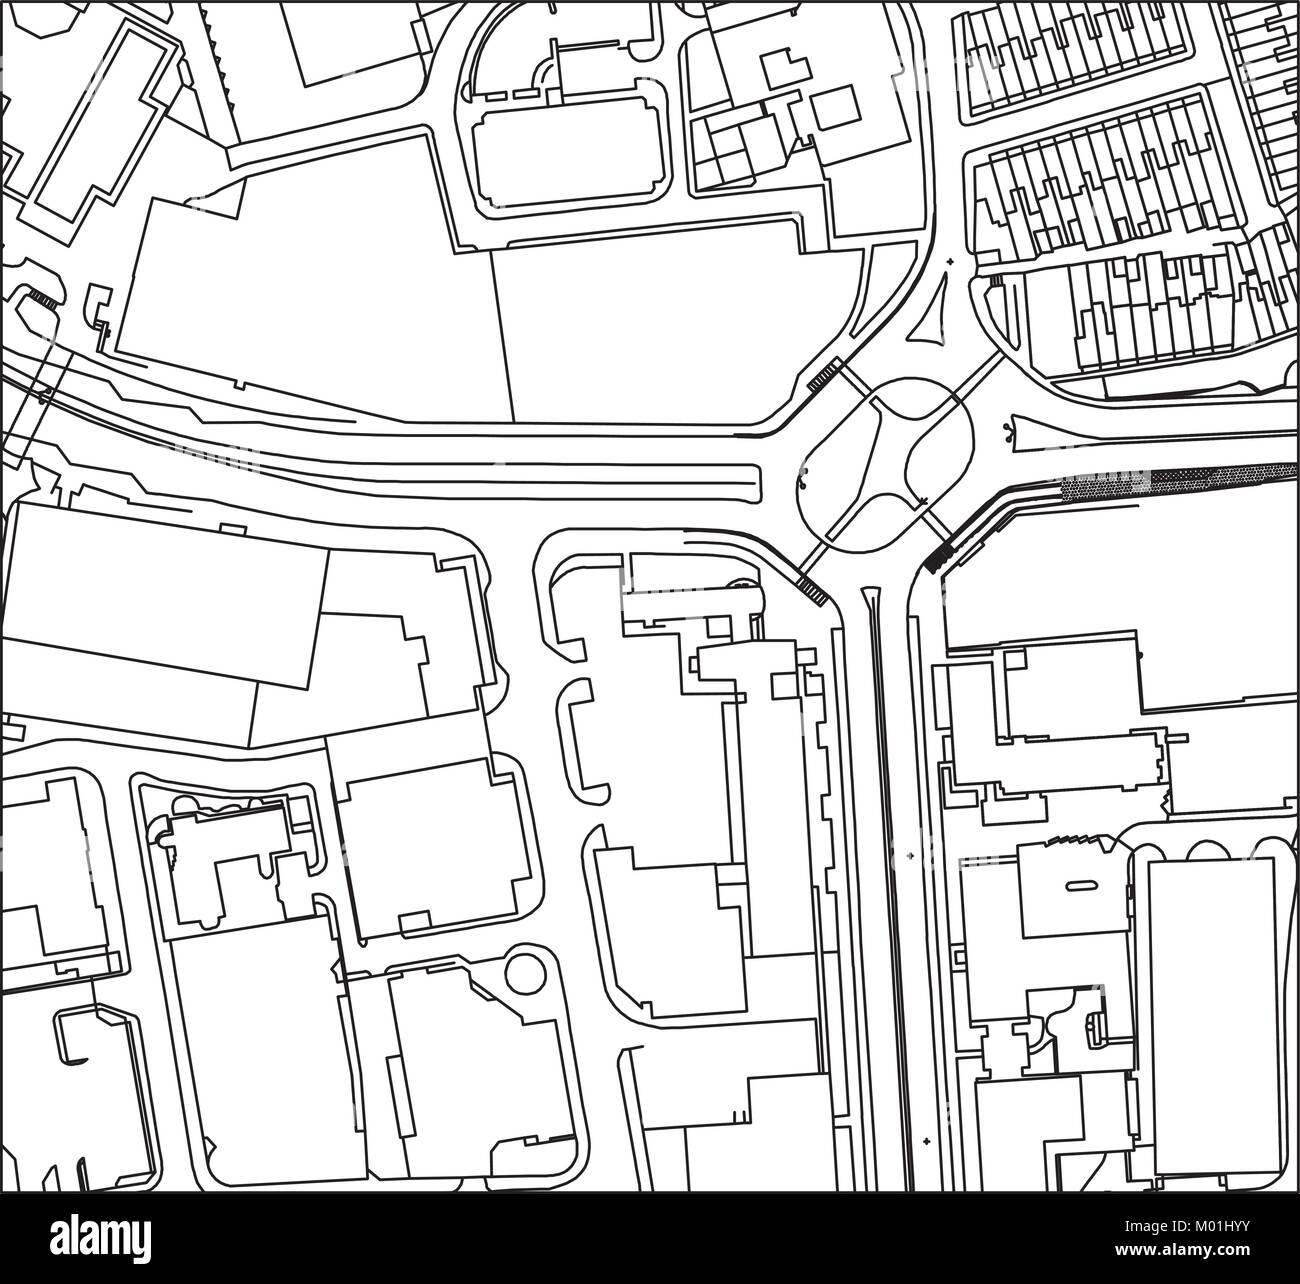 vector line drawing of a busy city or town from above - Stock Vector